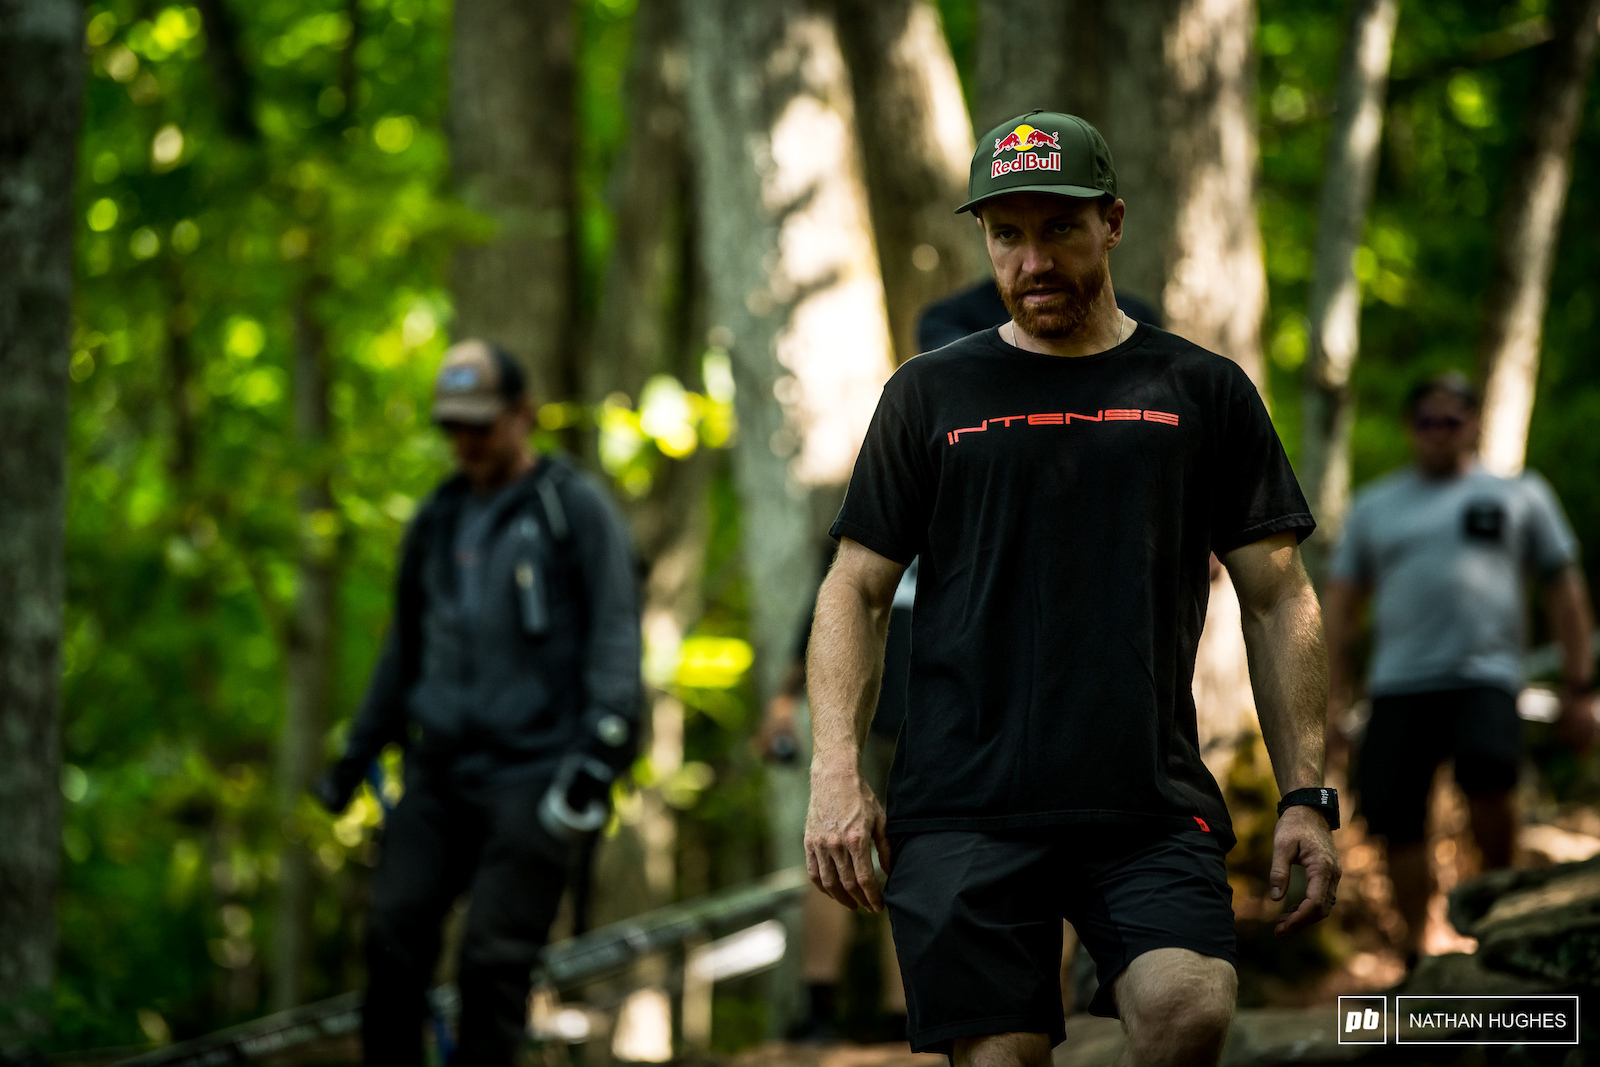 Back in the mix except not quite yet. Aaron Gwin will sit this one out and bide his time until 2022 for his comeback.